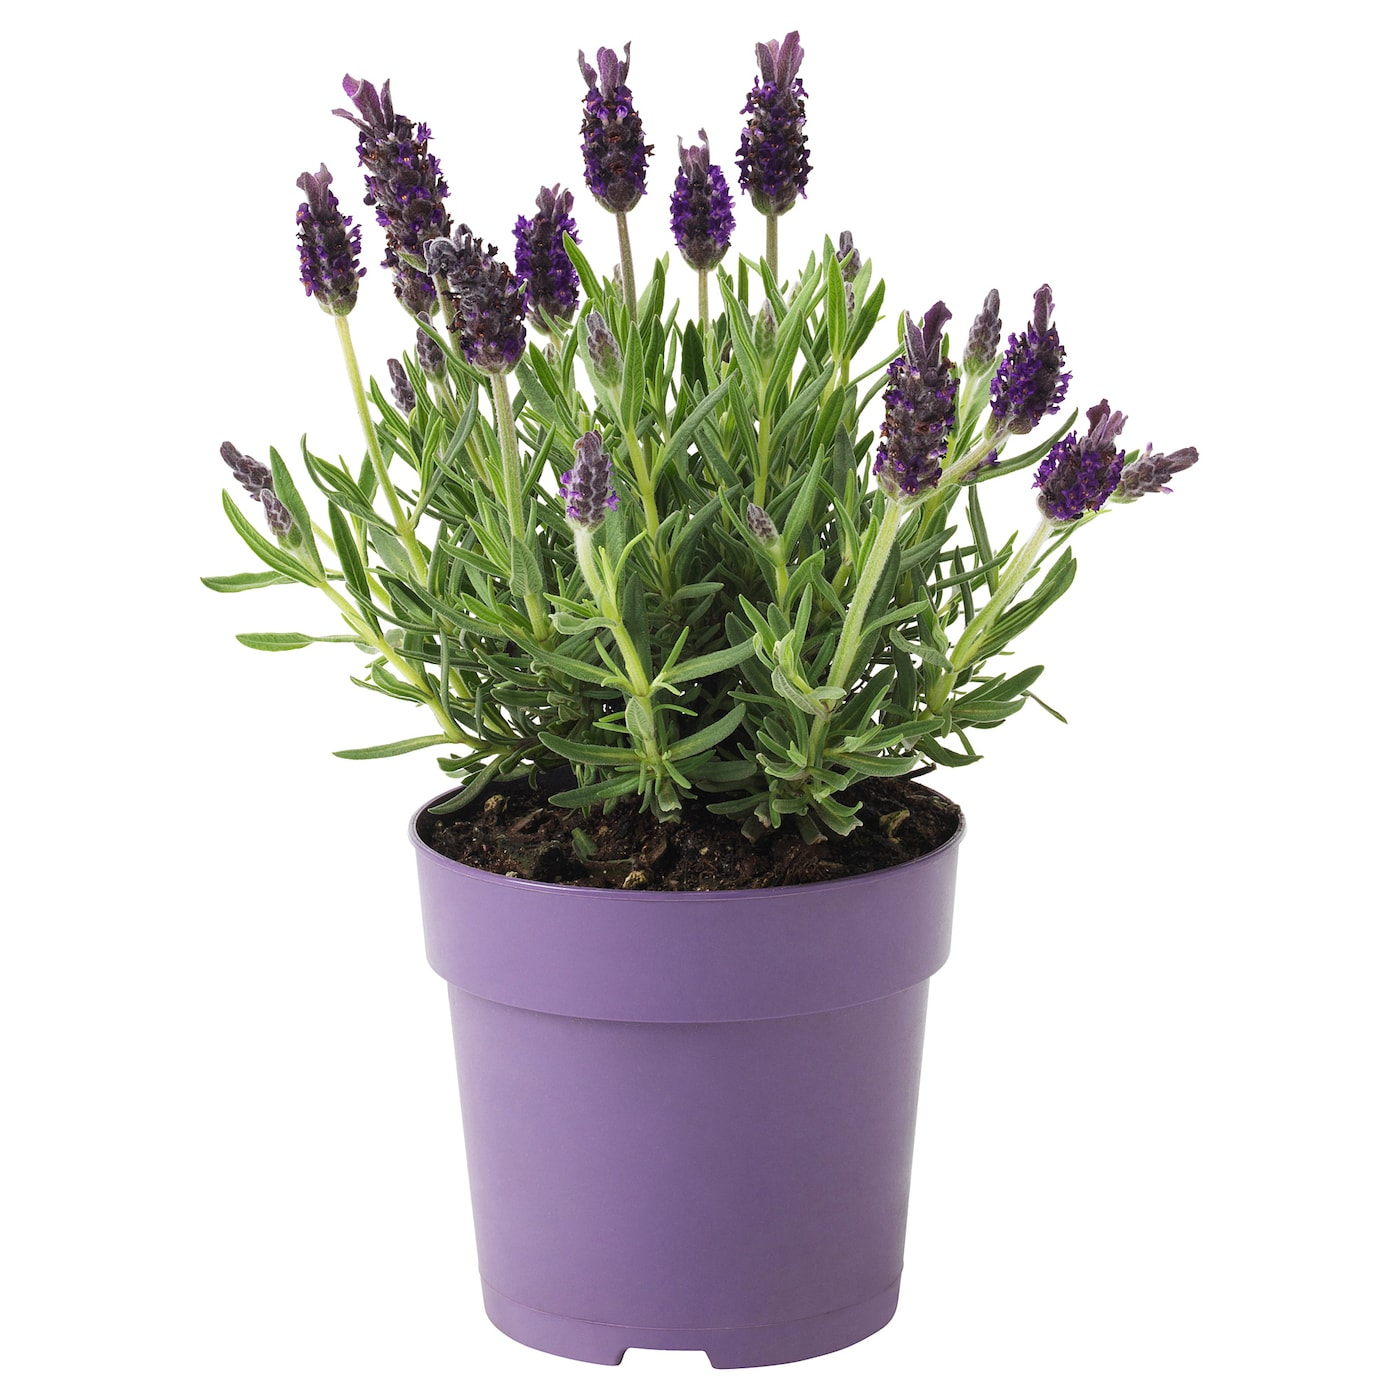 lavandula plante en pot lavande 12 cm ikea. Black Bedroom Furniture Sets. Home Design Ideas